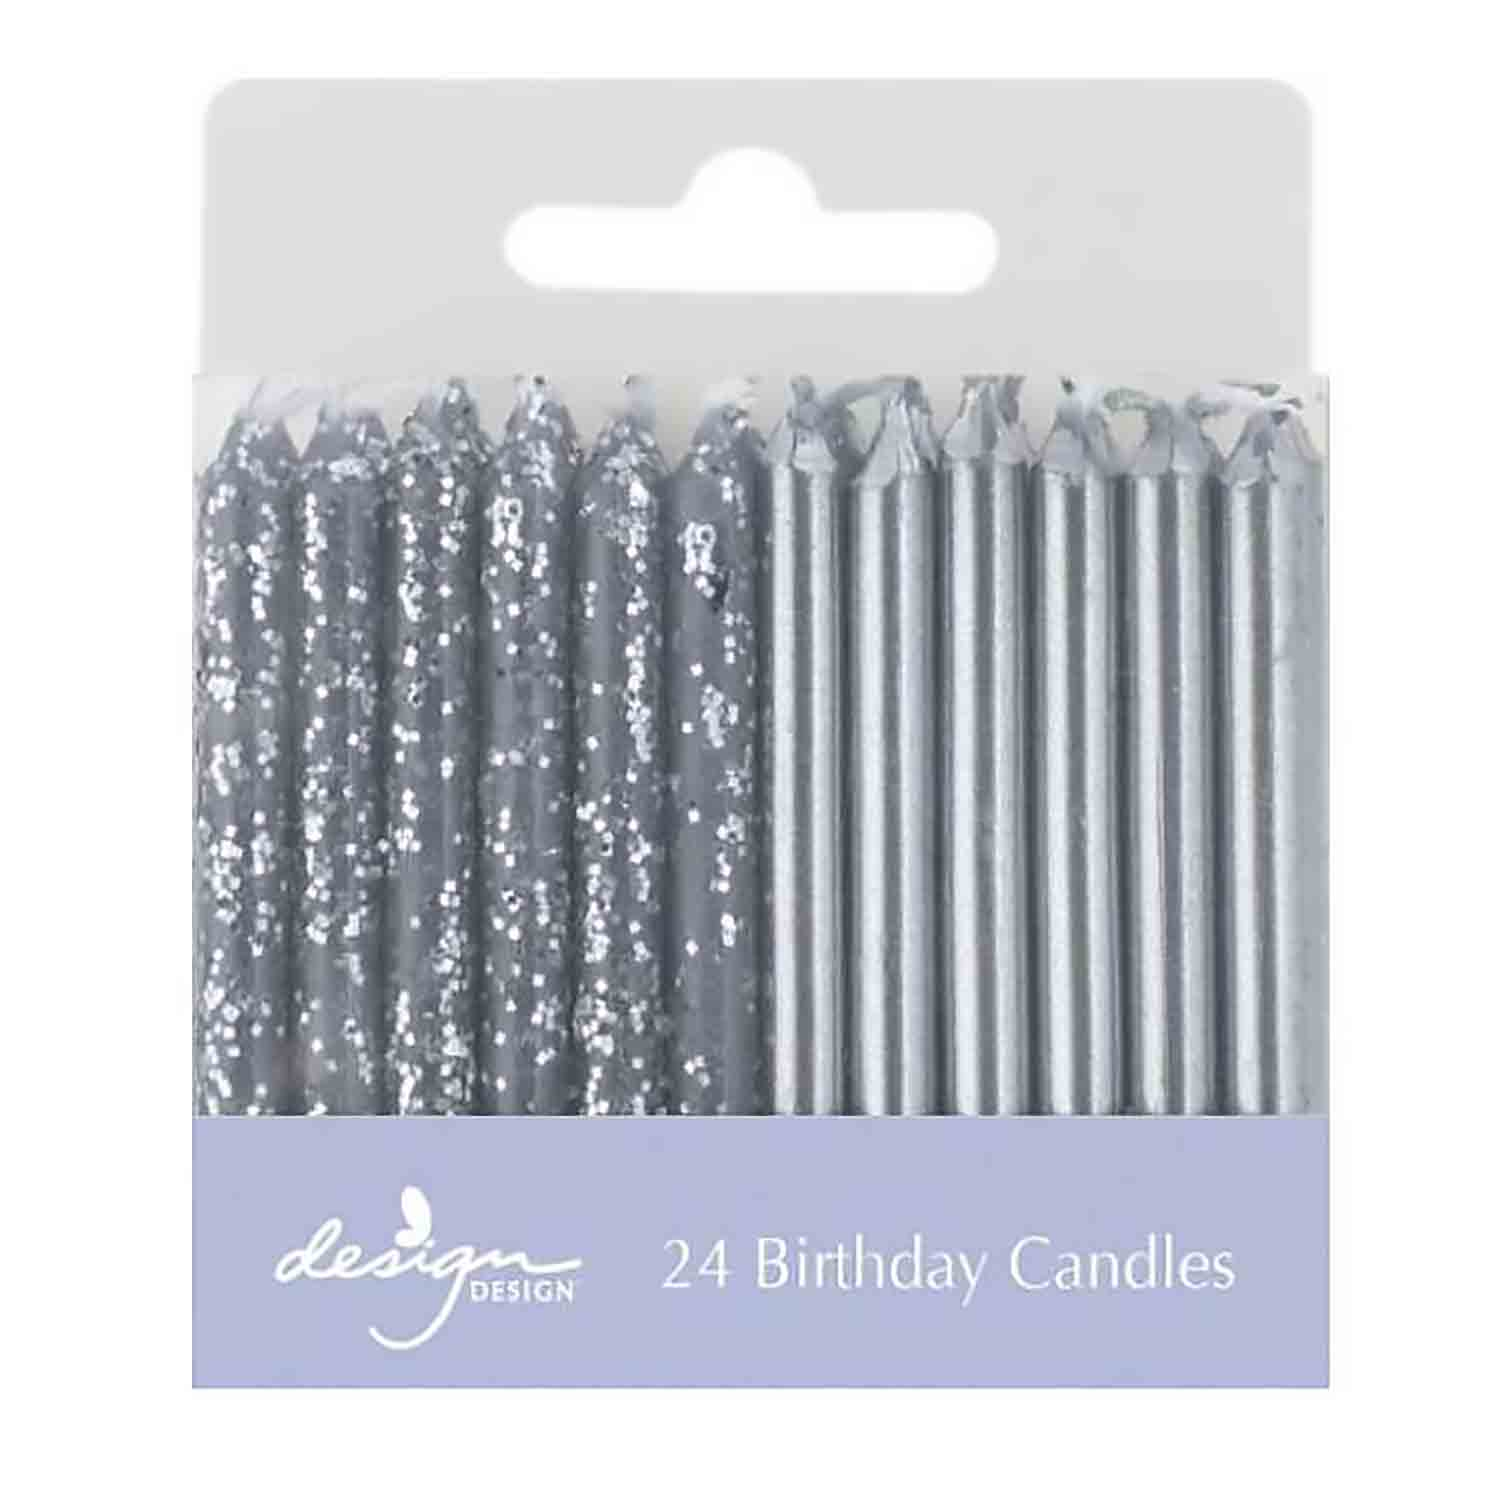 Metallic Silver Shimmer Candles